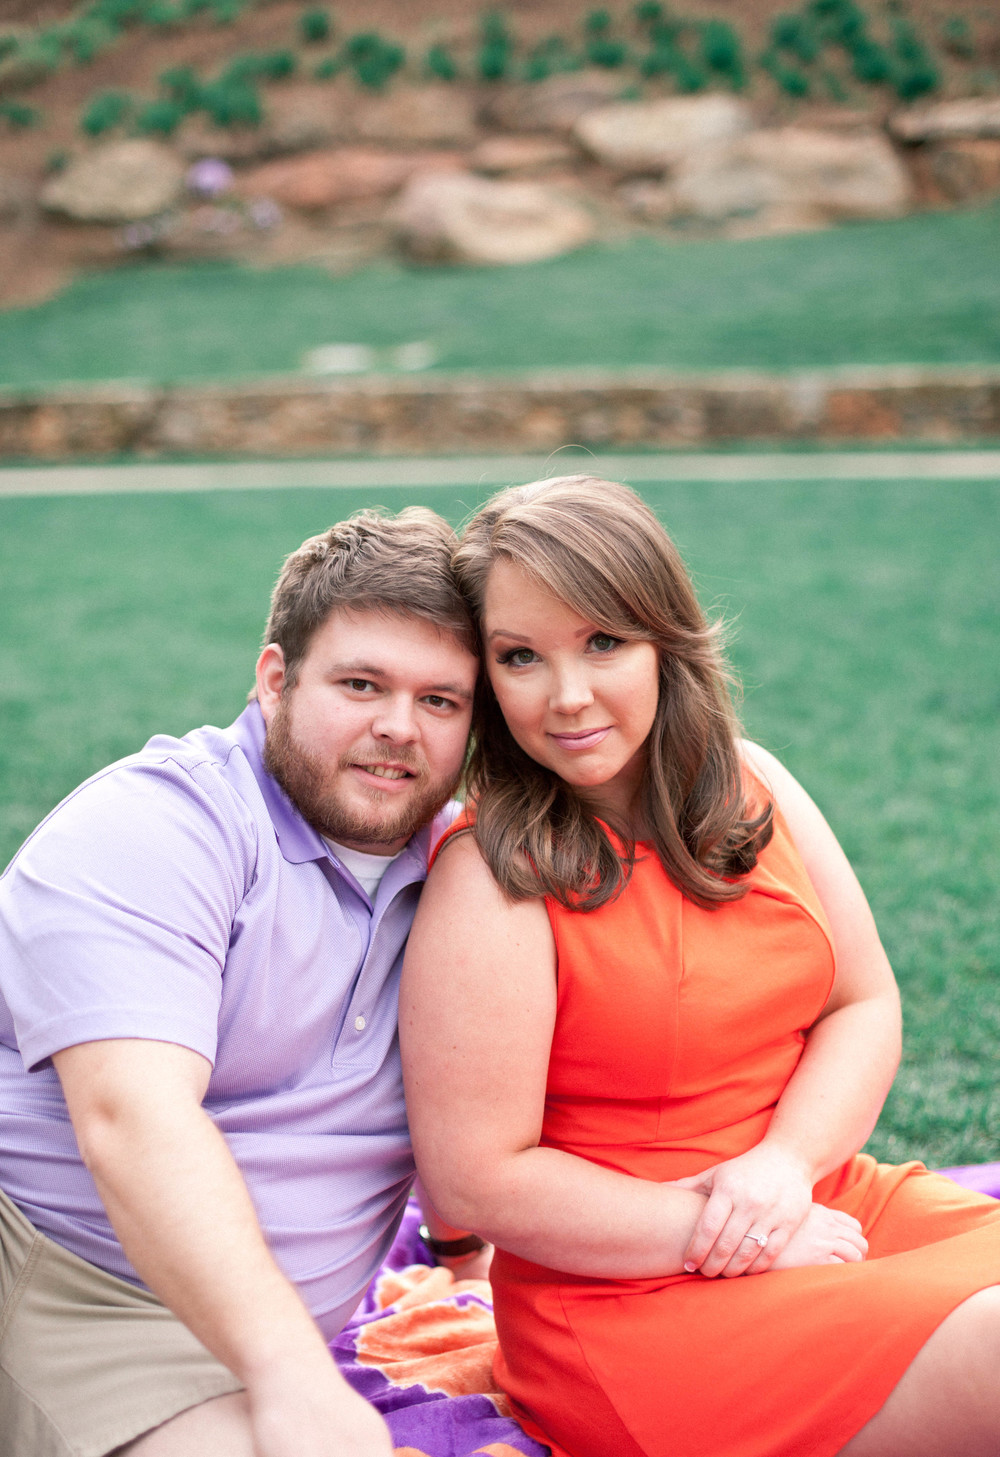 zach_gabbie_engagement_poured_out_photography-35.jpg